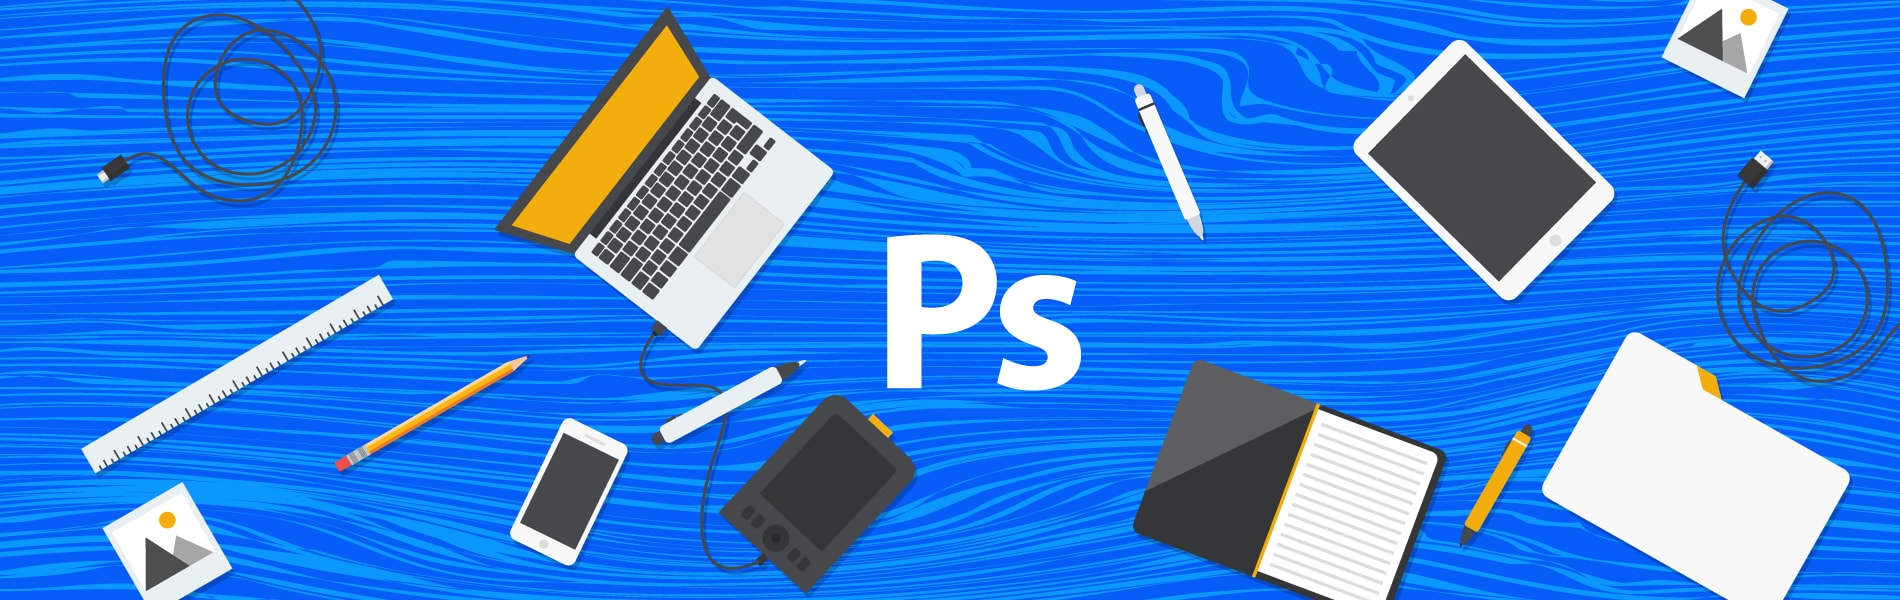 Photoshop Grafiktablett